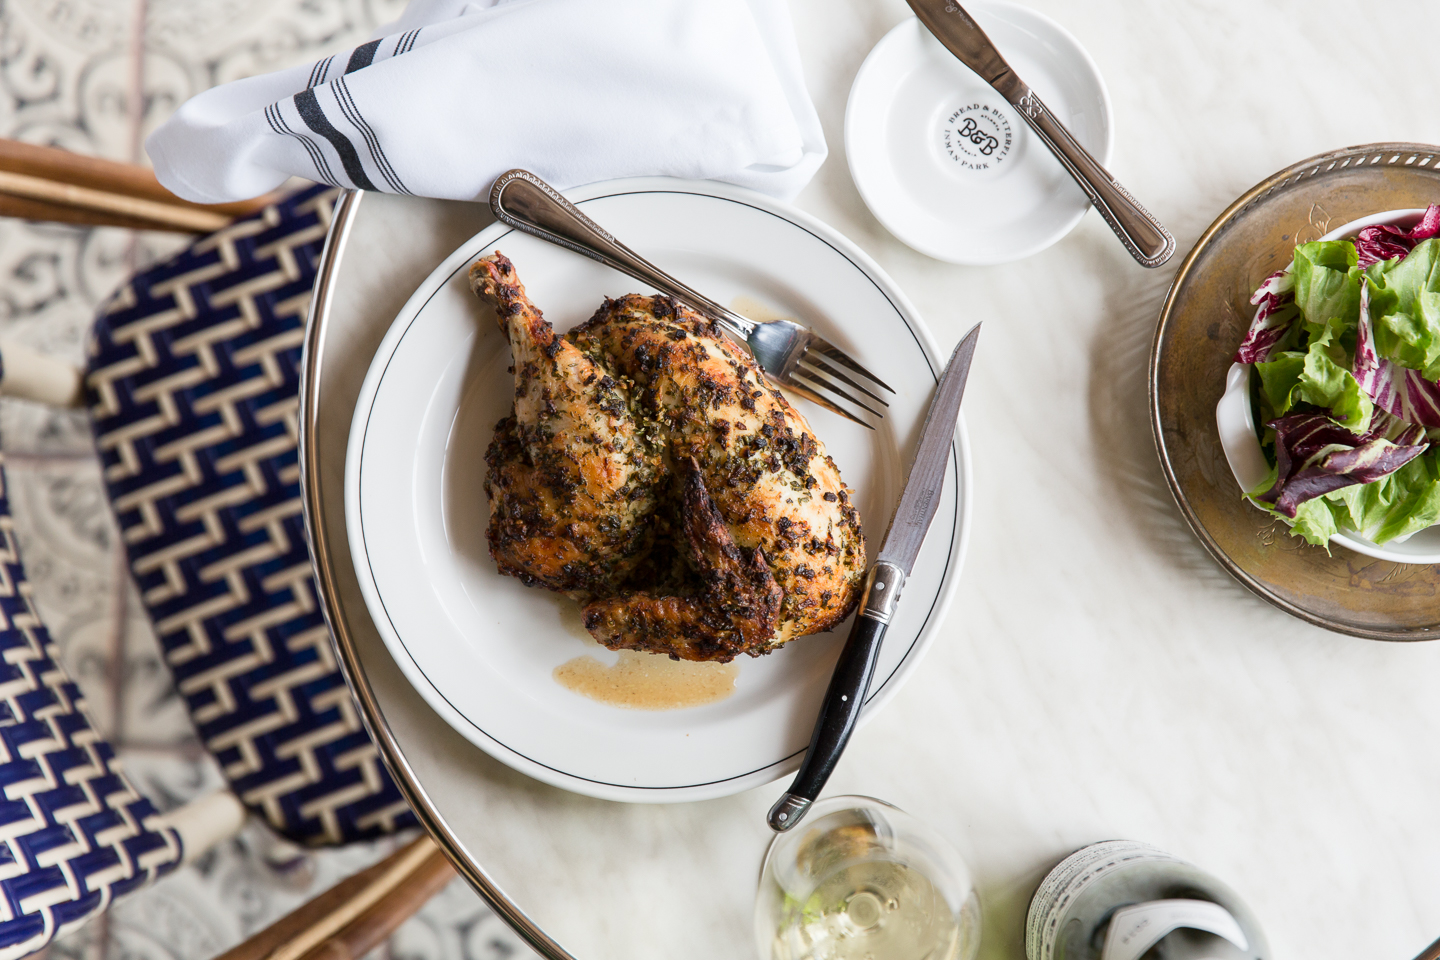 Bread and Butterfly's roasted chicken with créme fraîche and herbs.Photo courtesy of Bread and Butterfly. Photo by Amy Sinclair